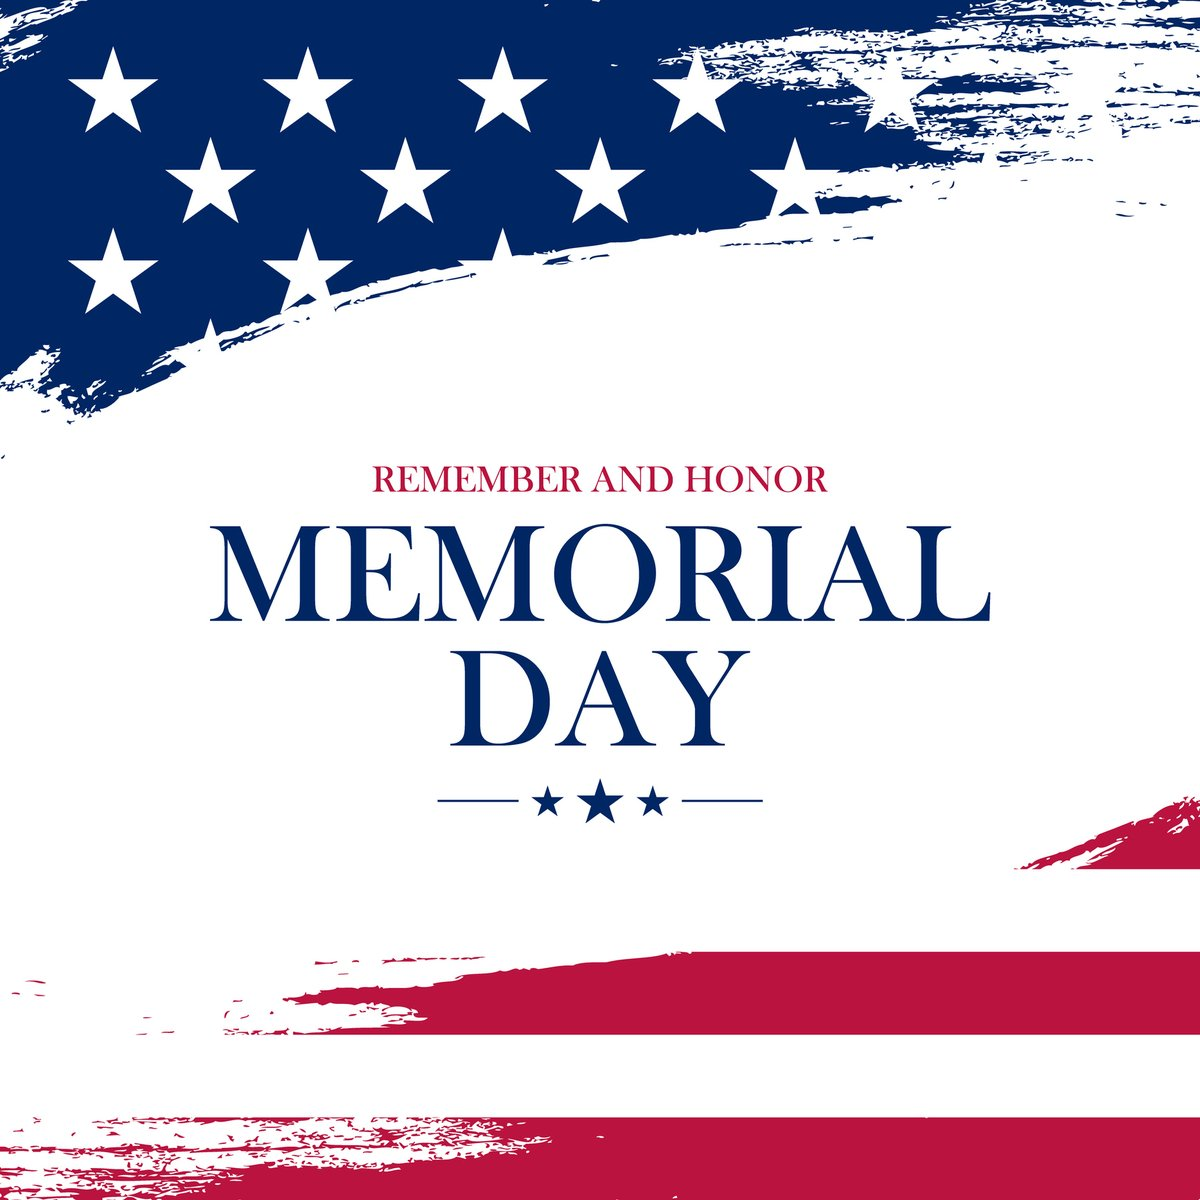 Let us remember and honor those who sacrificed their lives for the peace and security of our country.